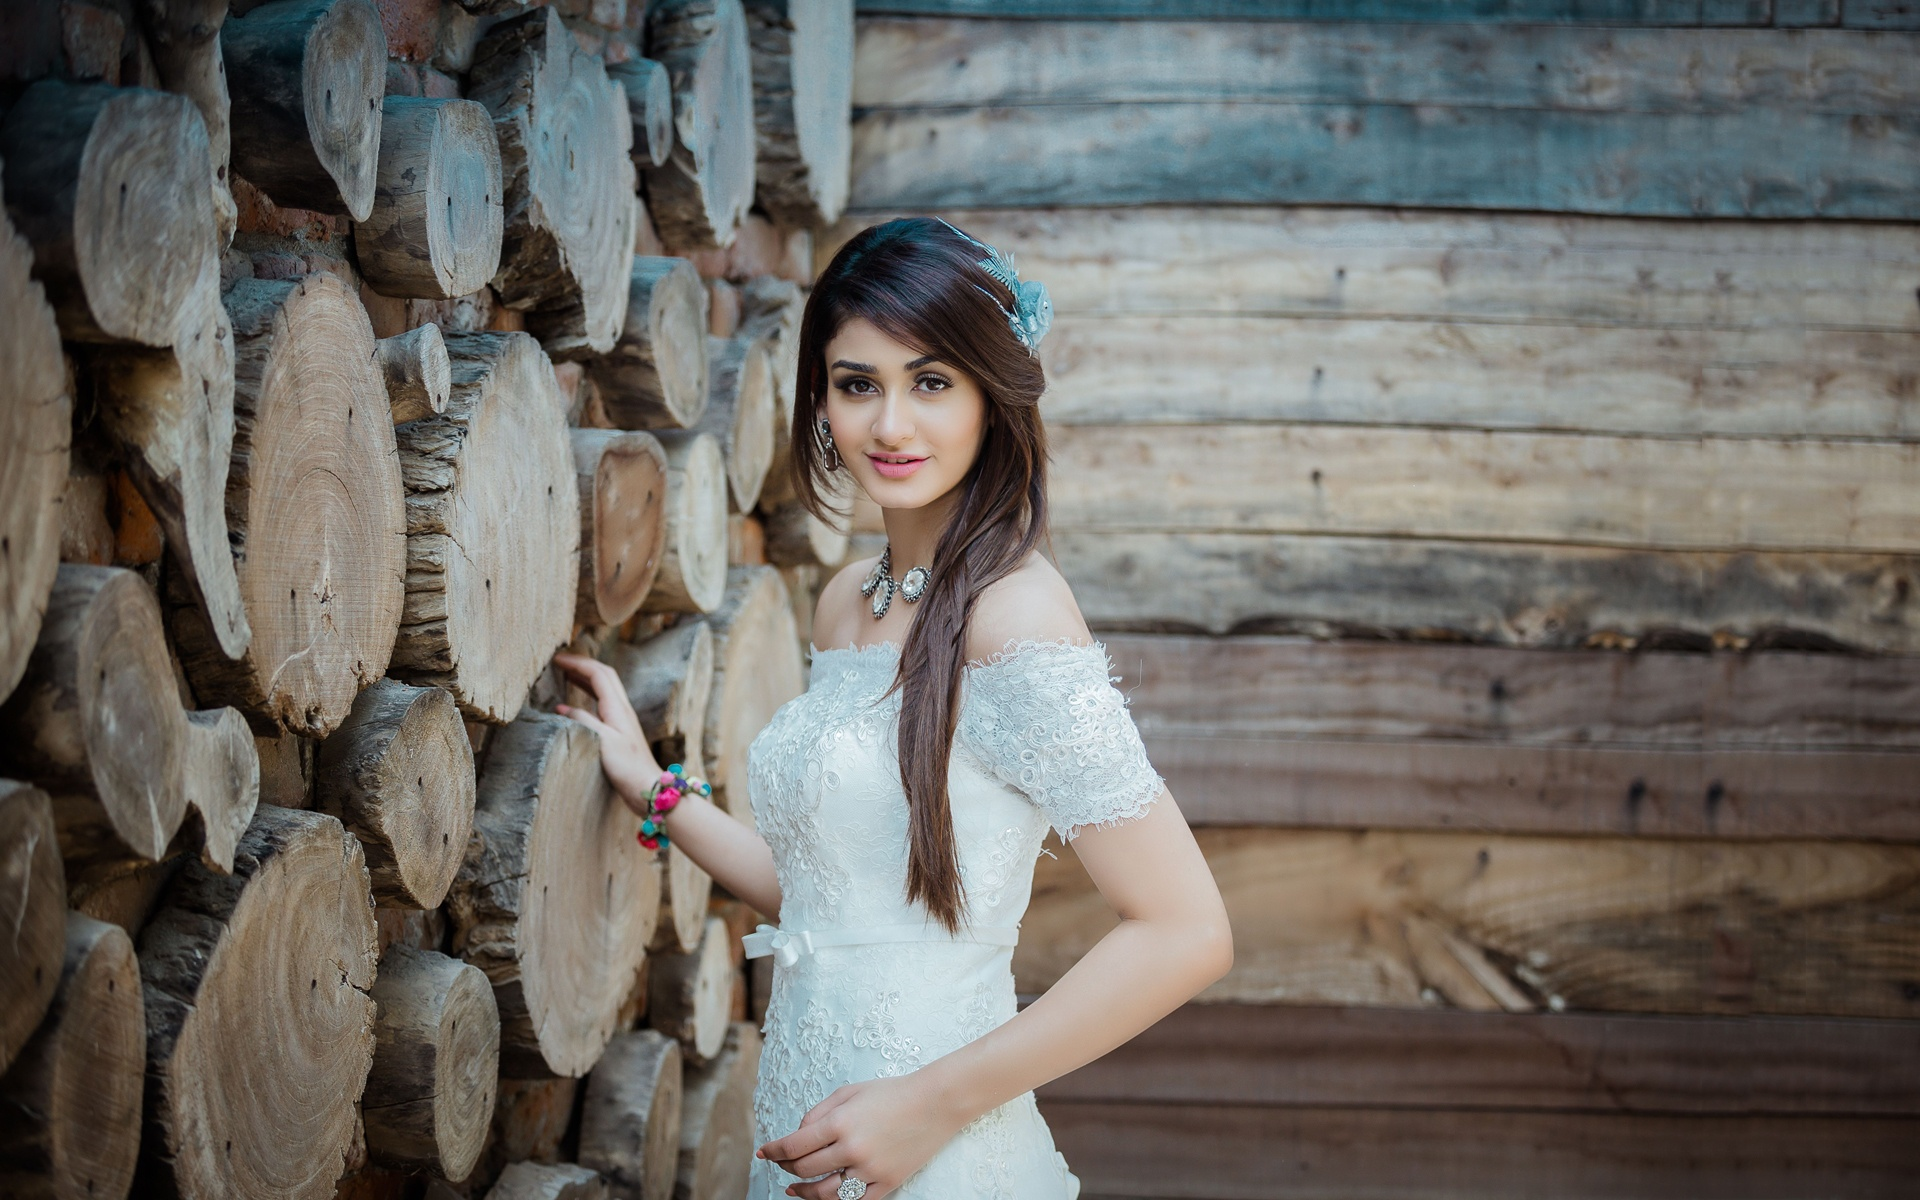 aditi arya bollywood actress model girl beautiful brunette pretty